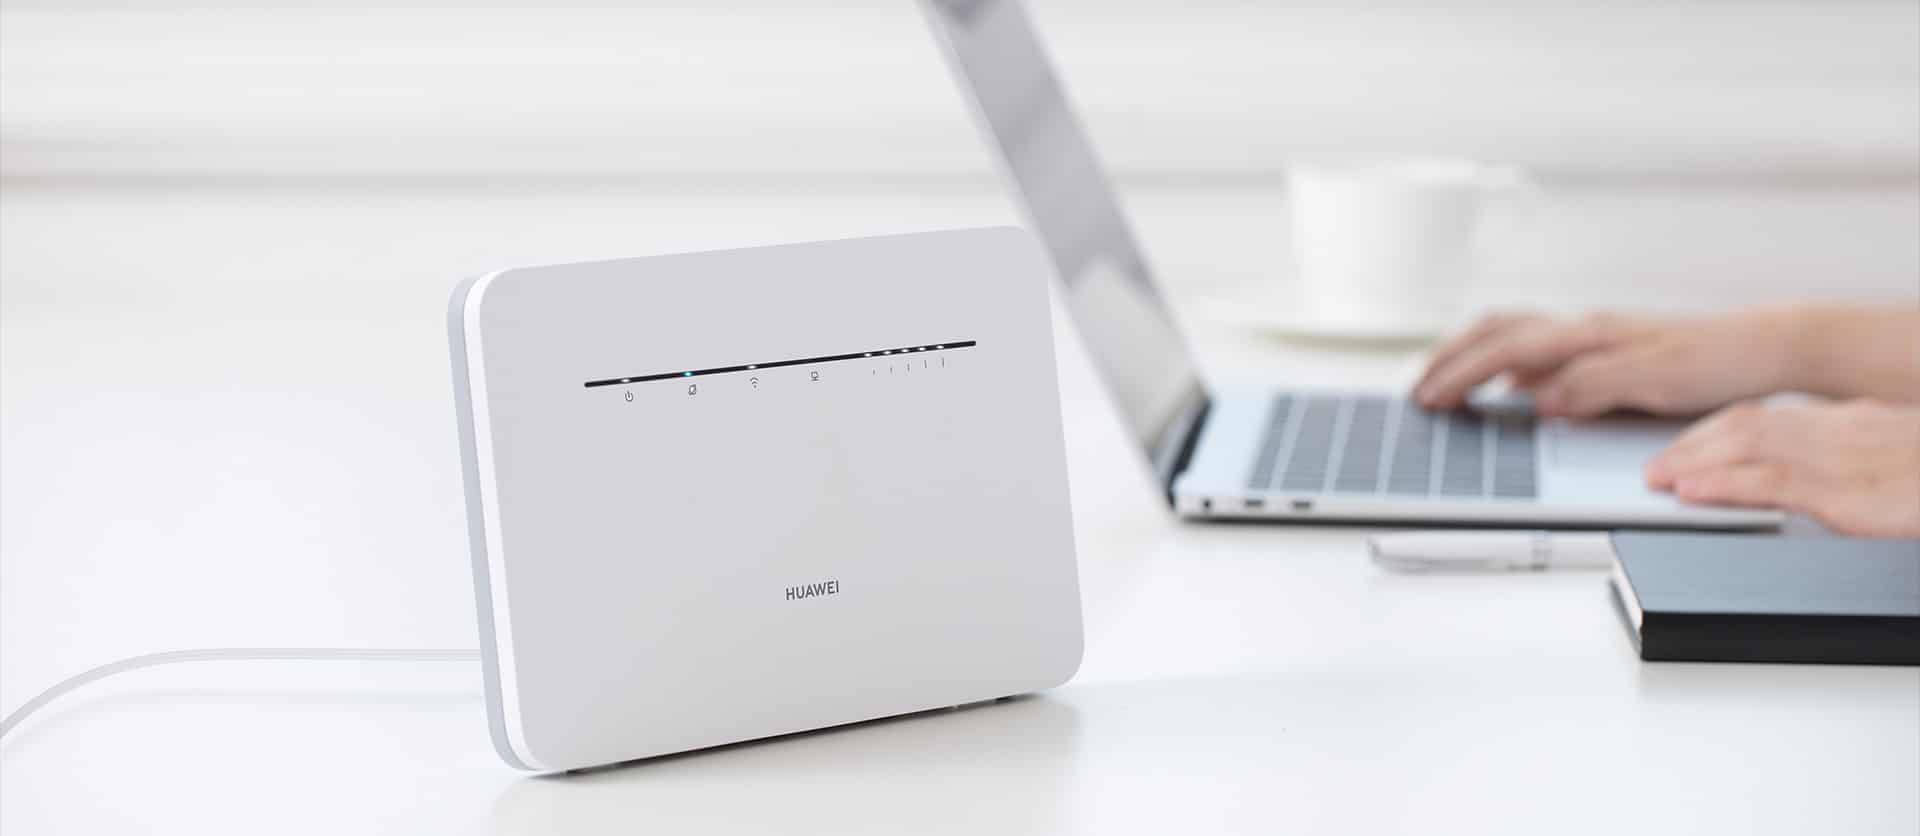 Huawei B535 Router Review